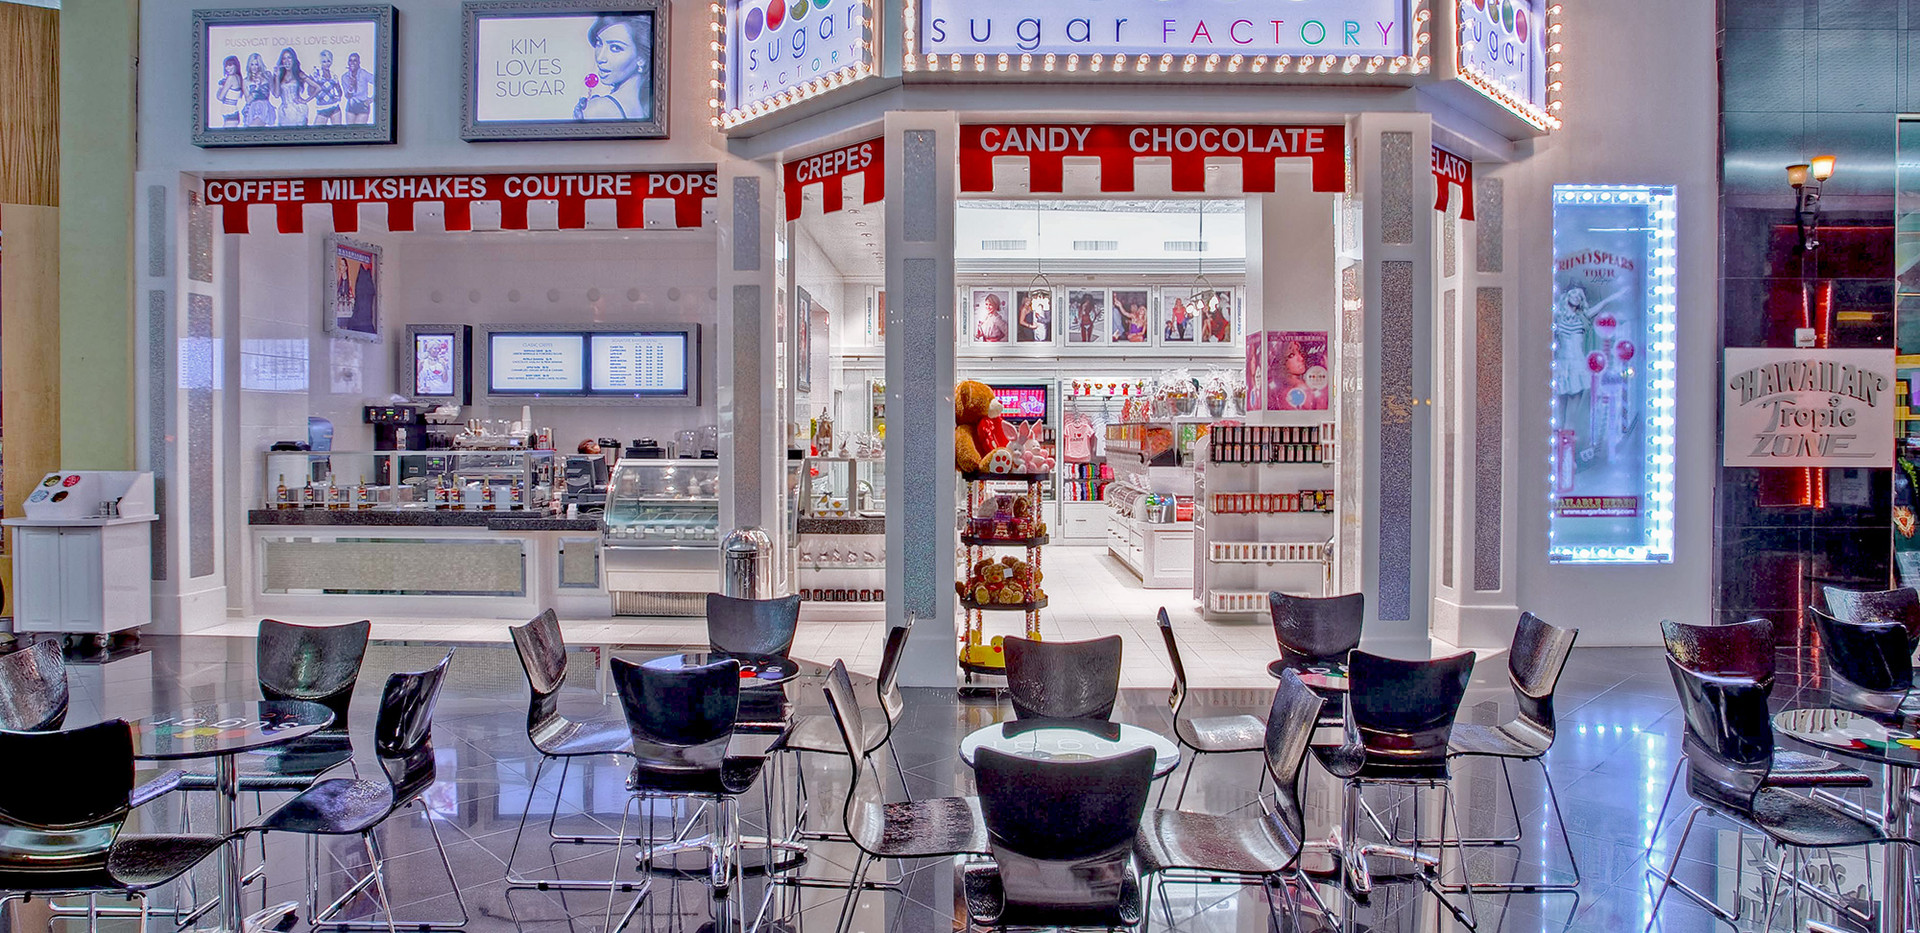 Sugar Factory at Miracle Mile Shops